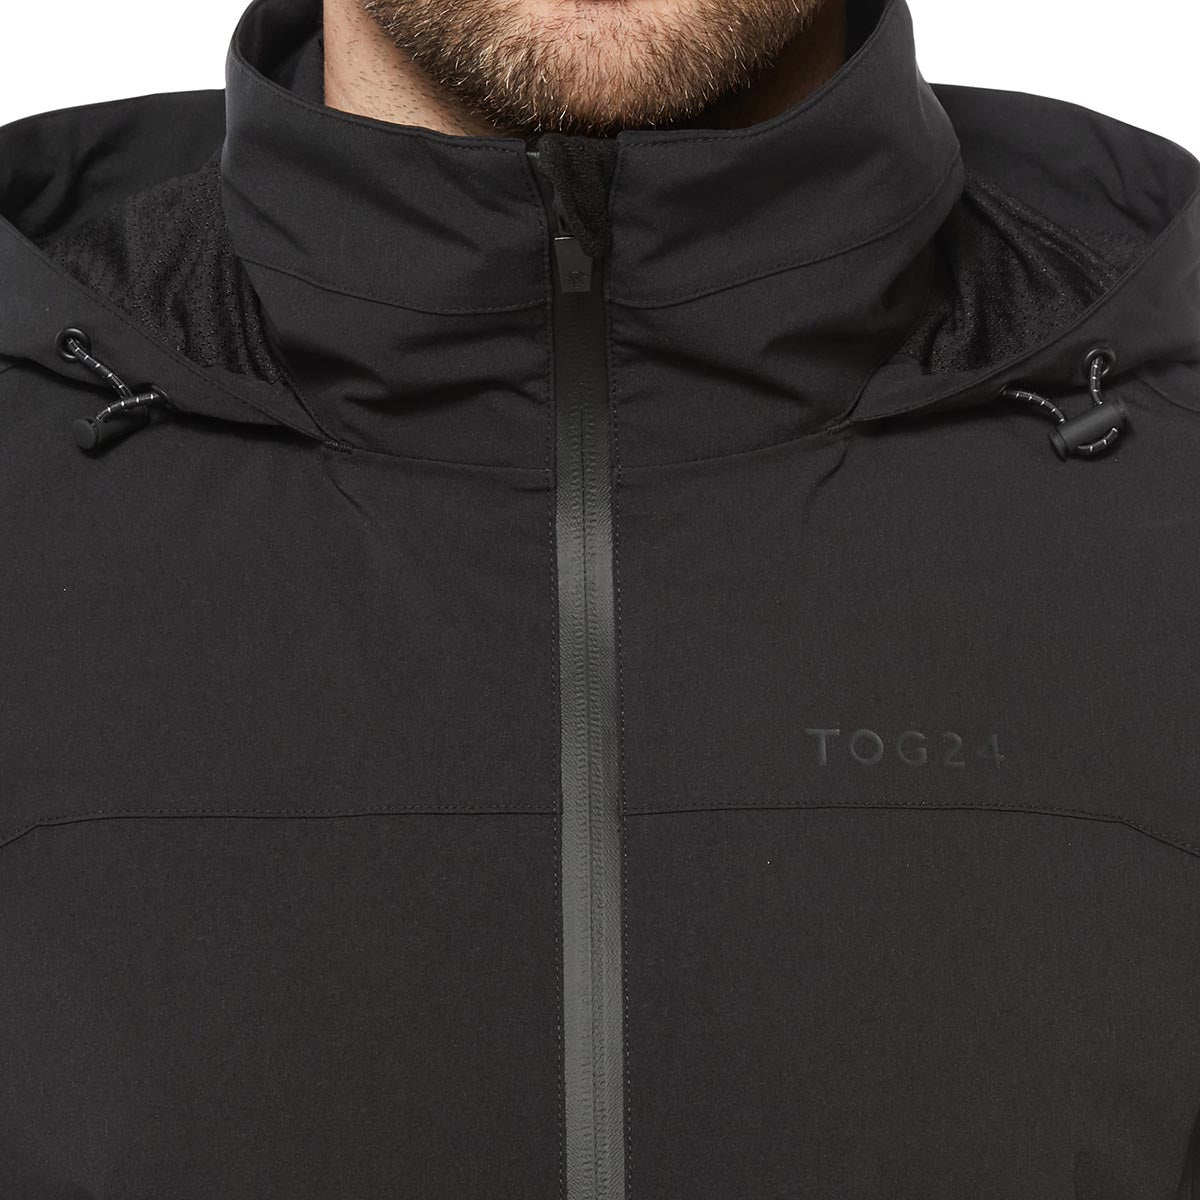 Sykes Mens Performance Waterproof Jacket - Black image 4